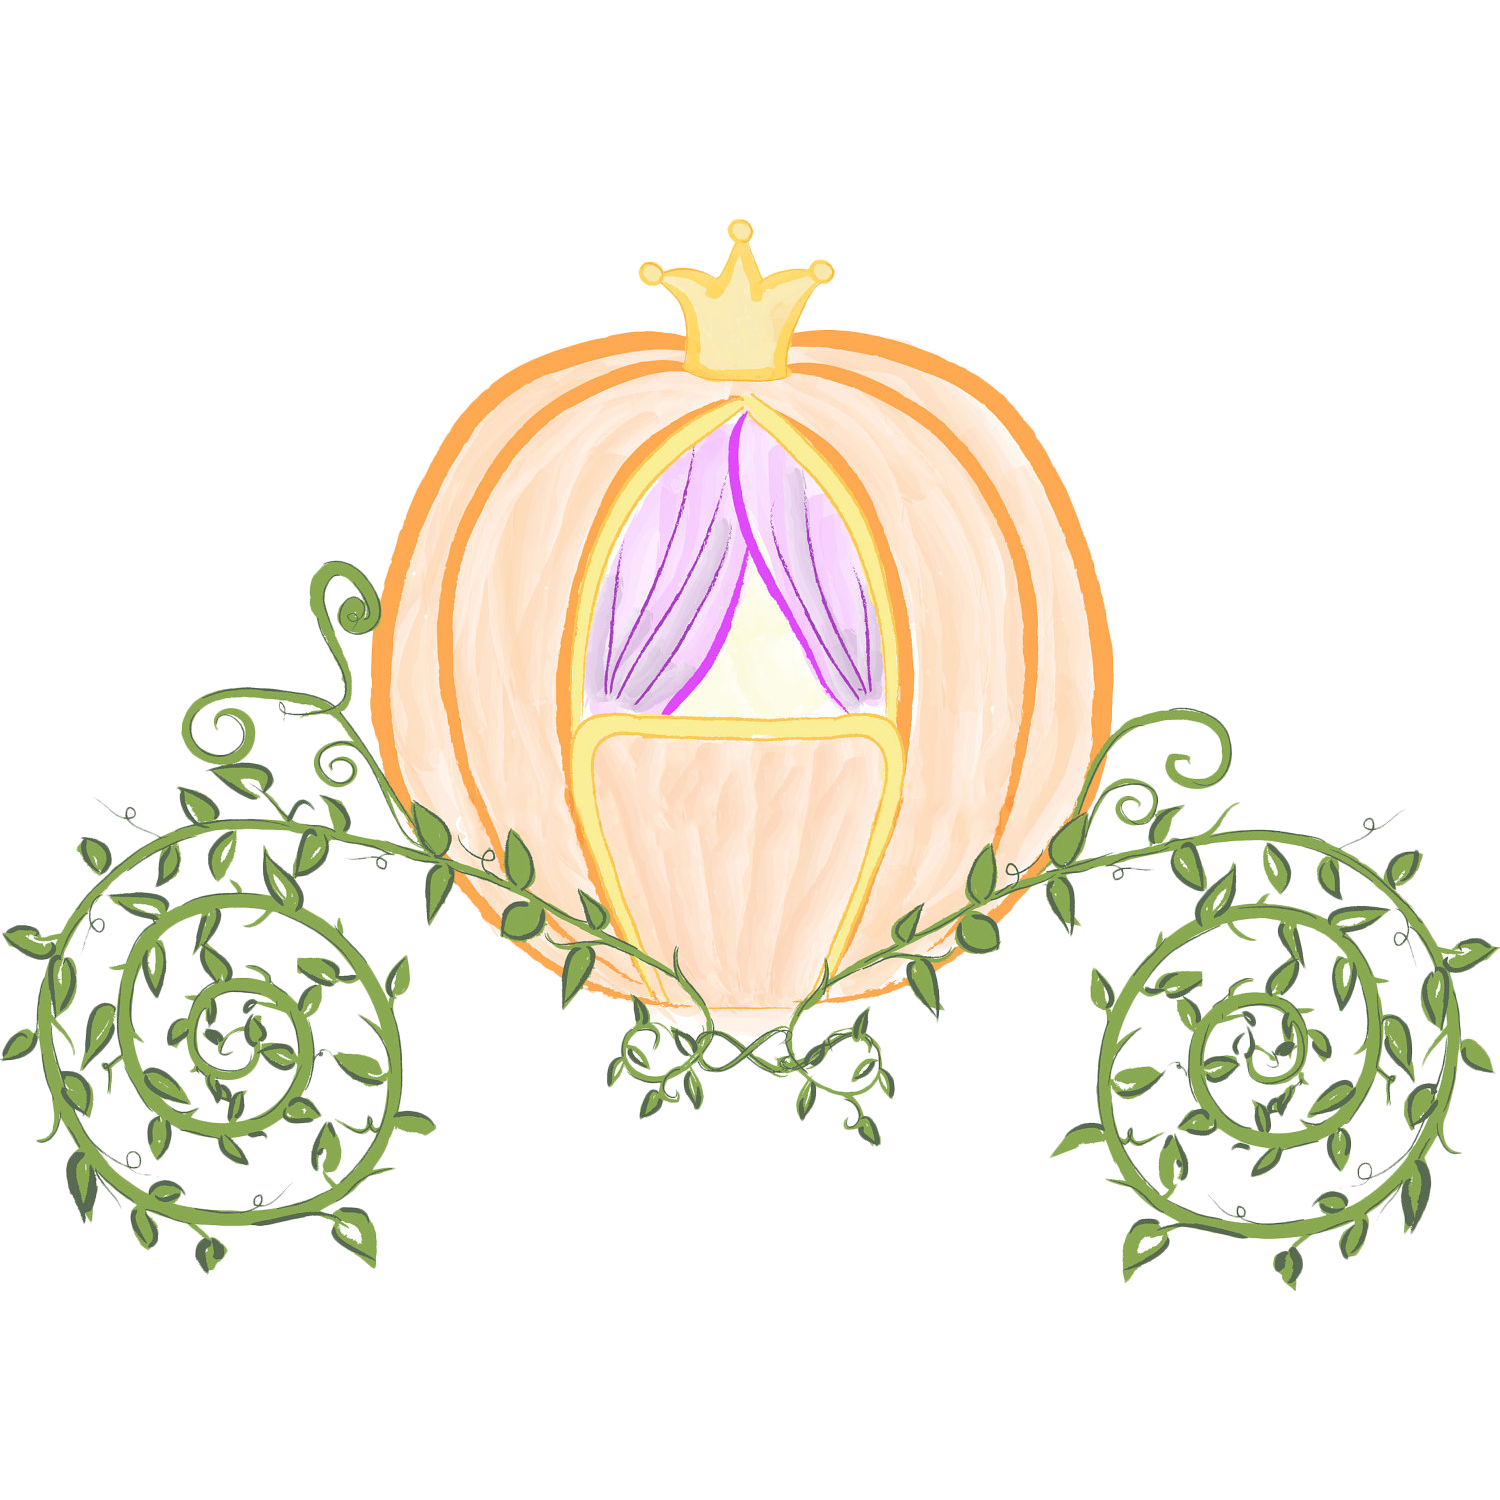 Pumpkin carriage clipart vector royalty free download Cinderella Prince Charming Pumpkin Carriage Clip art - Hand painted ... vector royalty free download